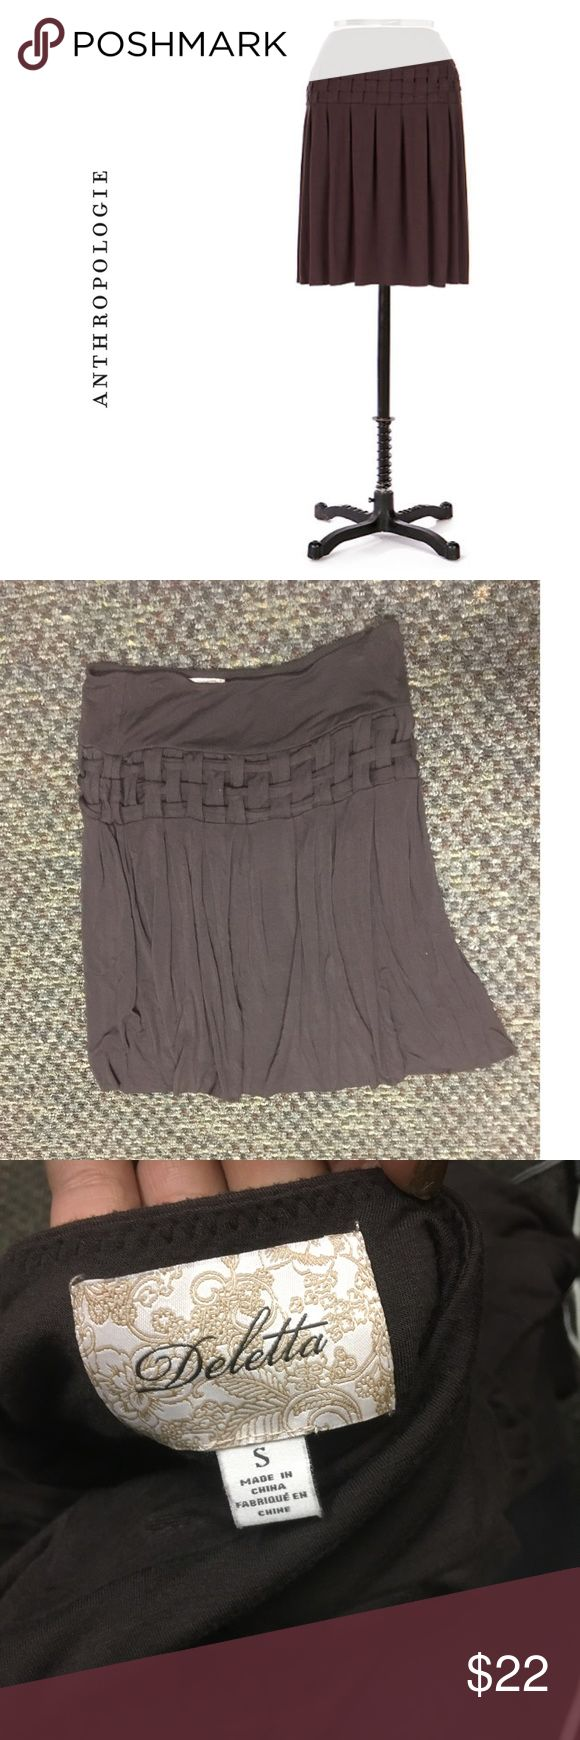 """Rare Anthropologie Basketweave skirt Jersey knit  skirt by Deletta with a woven  panel in the middle . Great condition . Size s but is super stretchy so will fit a 4-8 easily . Measurements- waist - 14.5"""" unstretched .  length - 21"""" Anthropologie Skirts"""